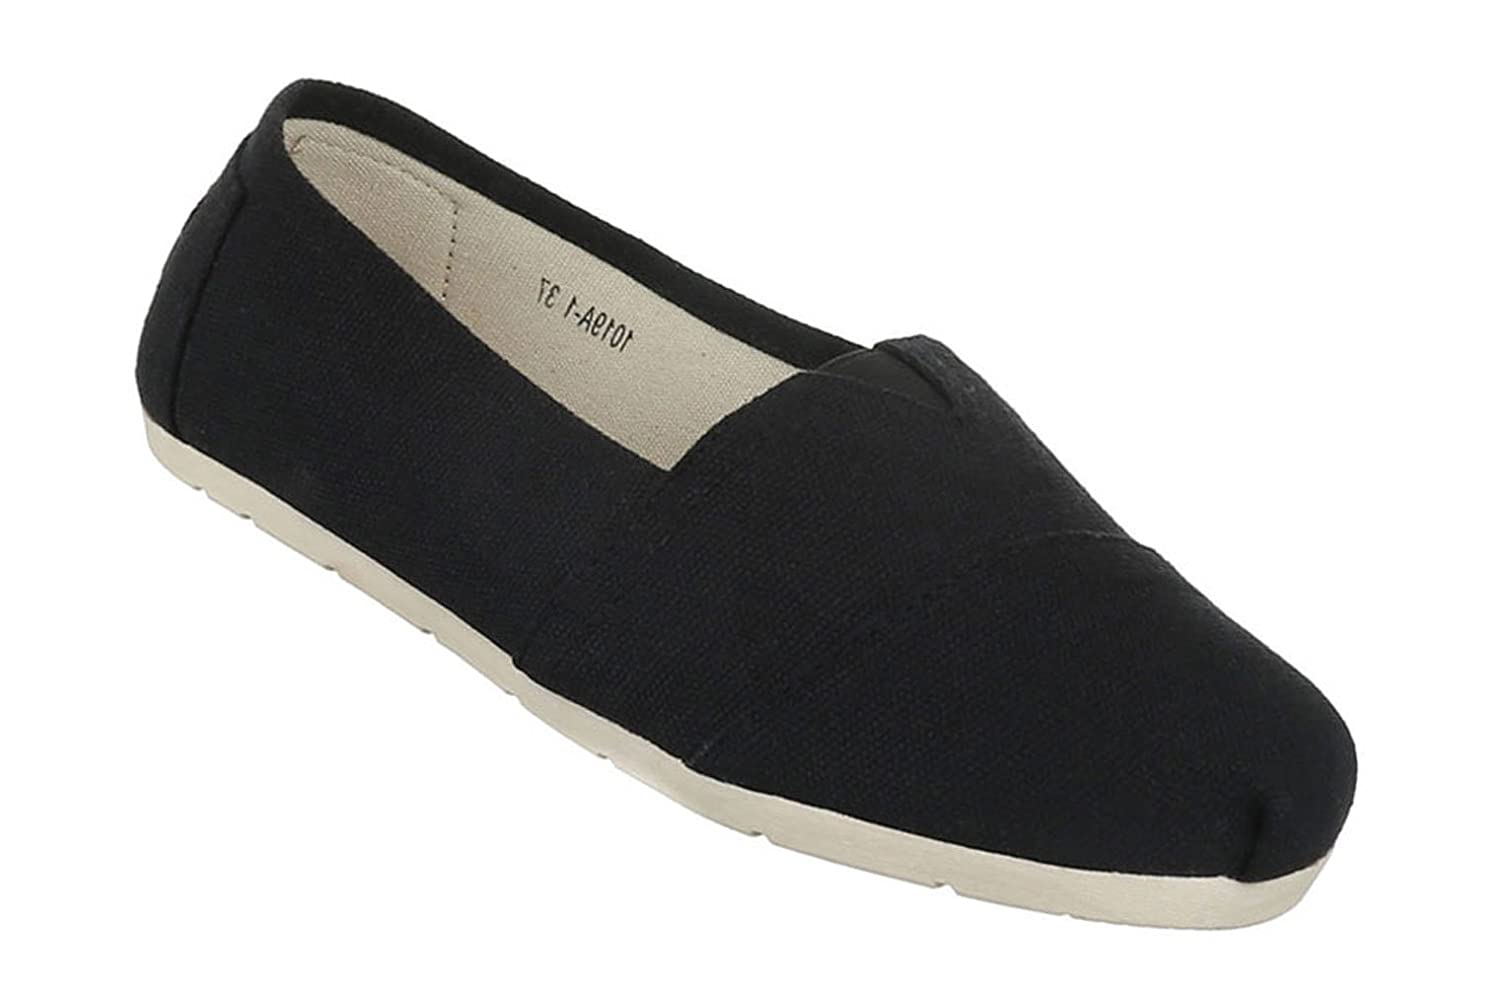 Women`s low shoes shoes moccasin Flats Slipper with Stretch Black Beige White 6 7 8 9 10 11 50%OFF